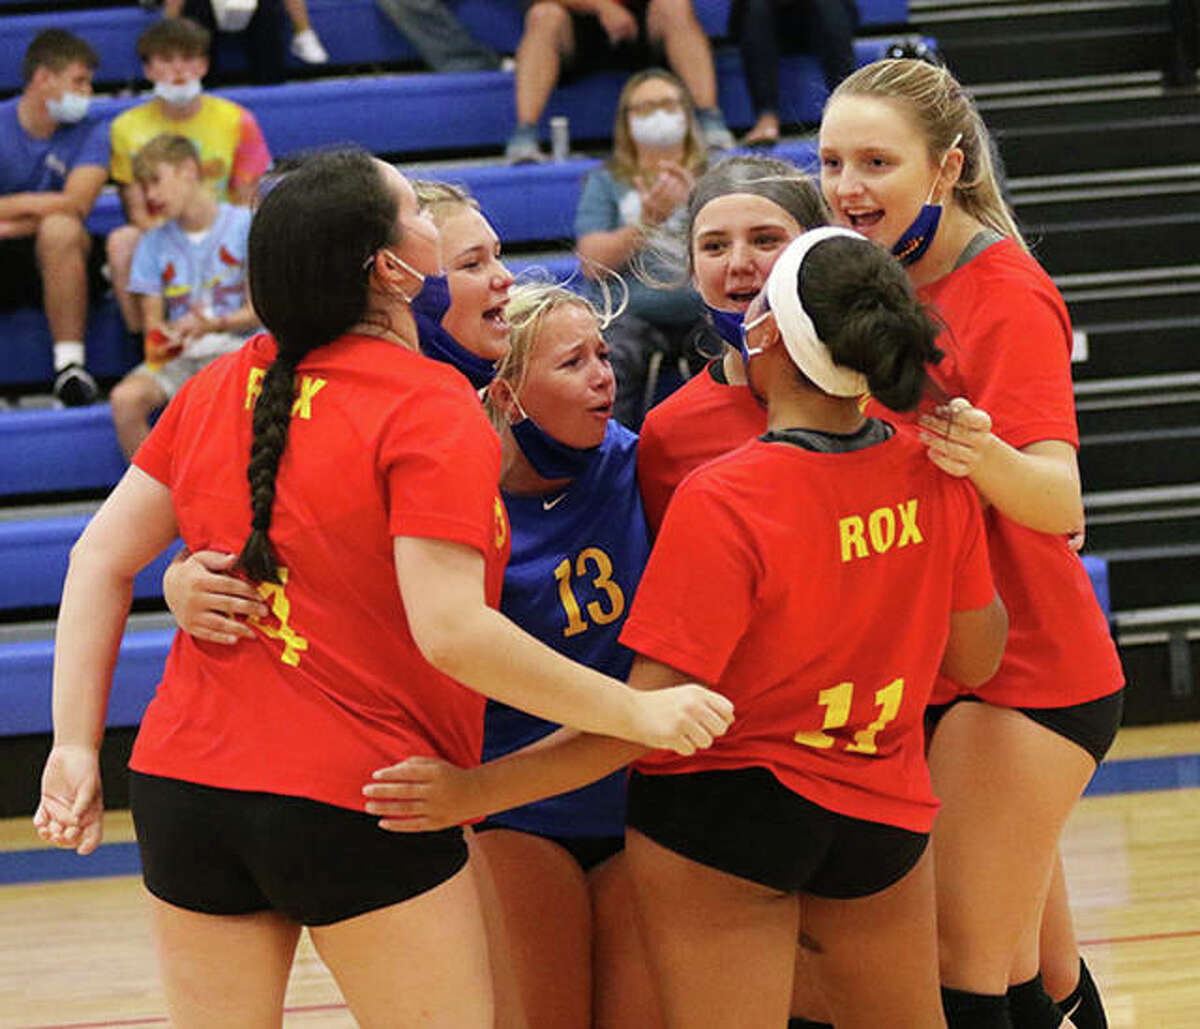 The Roxana Shells celebrate a point during their match against CM on Tuesday at the Roxana Tournament. The Shells lost to the Eagles, but bounced back to win their final two matches in pool play.